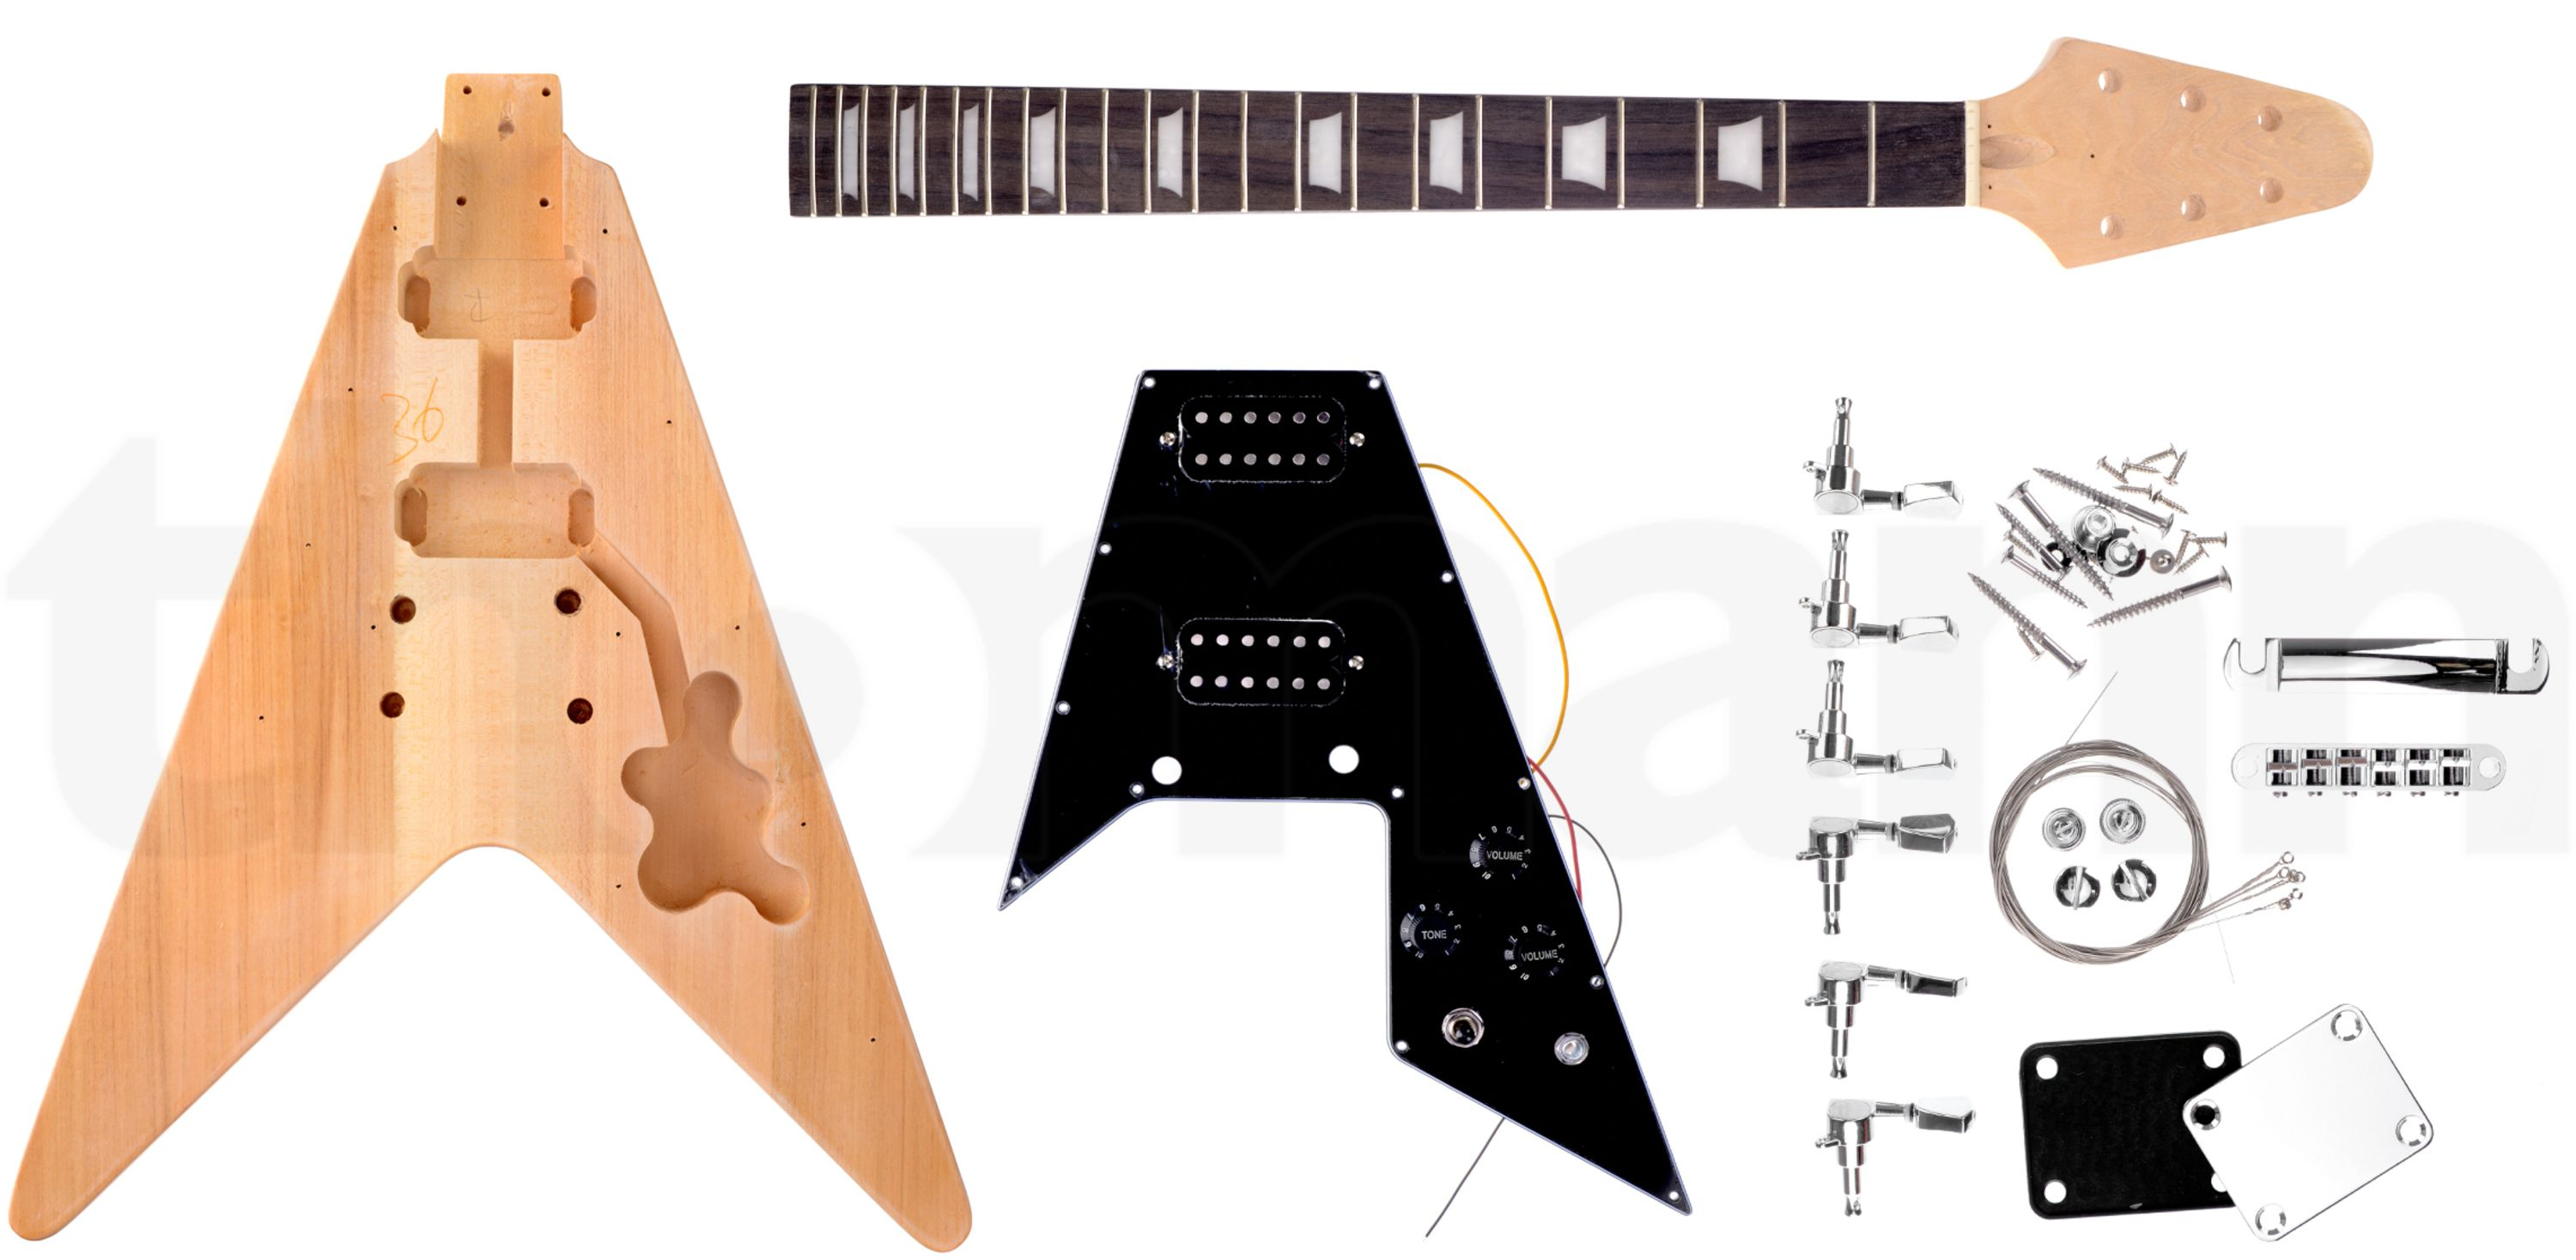 Harley Benton Electric Guitar Kit V Style The Perfect Gift For